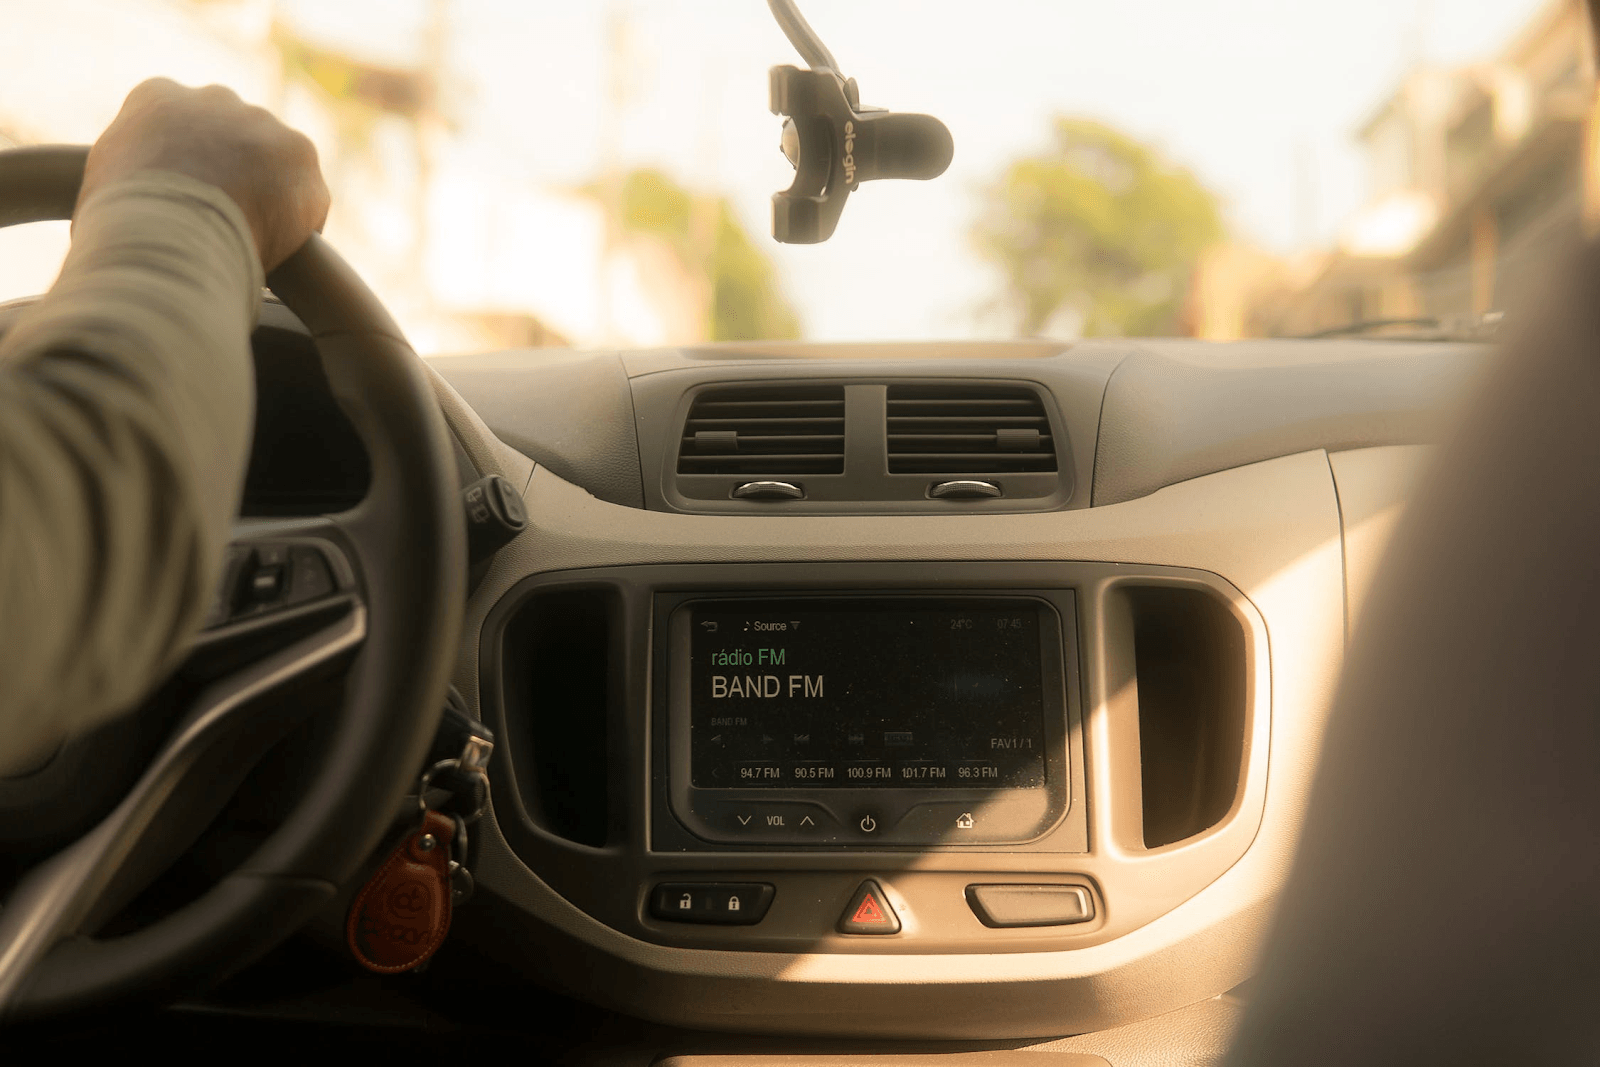 Safety Advice for Riding in Ubers, Lyfts, and Other Rideshares